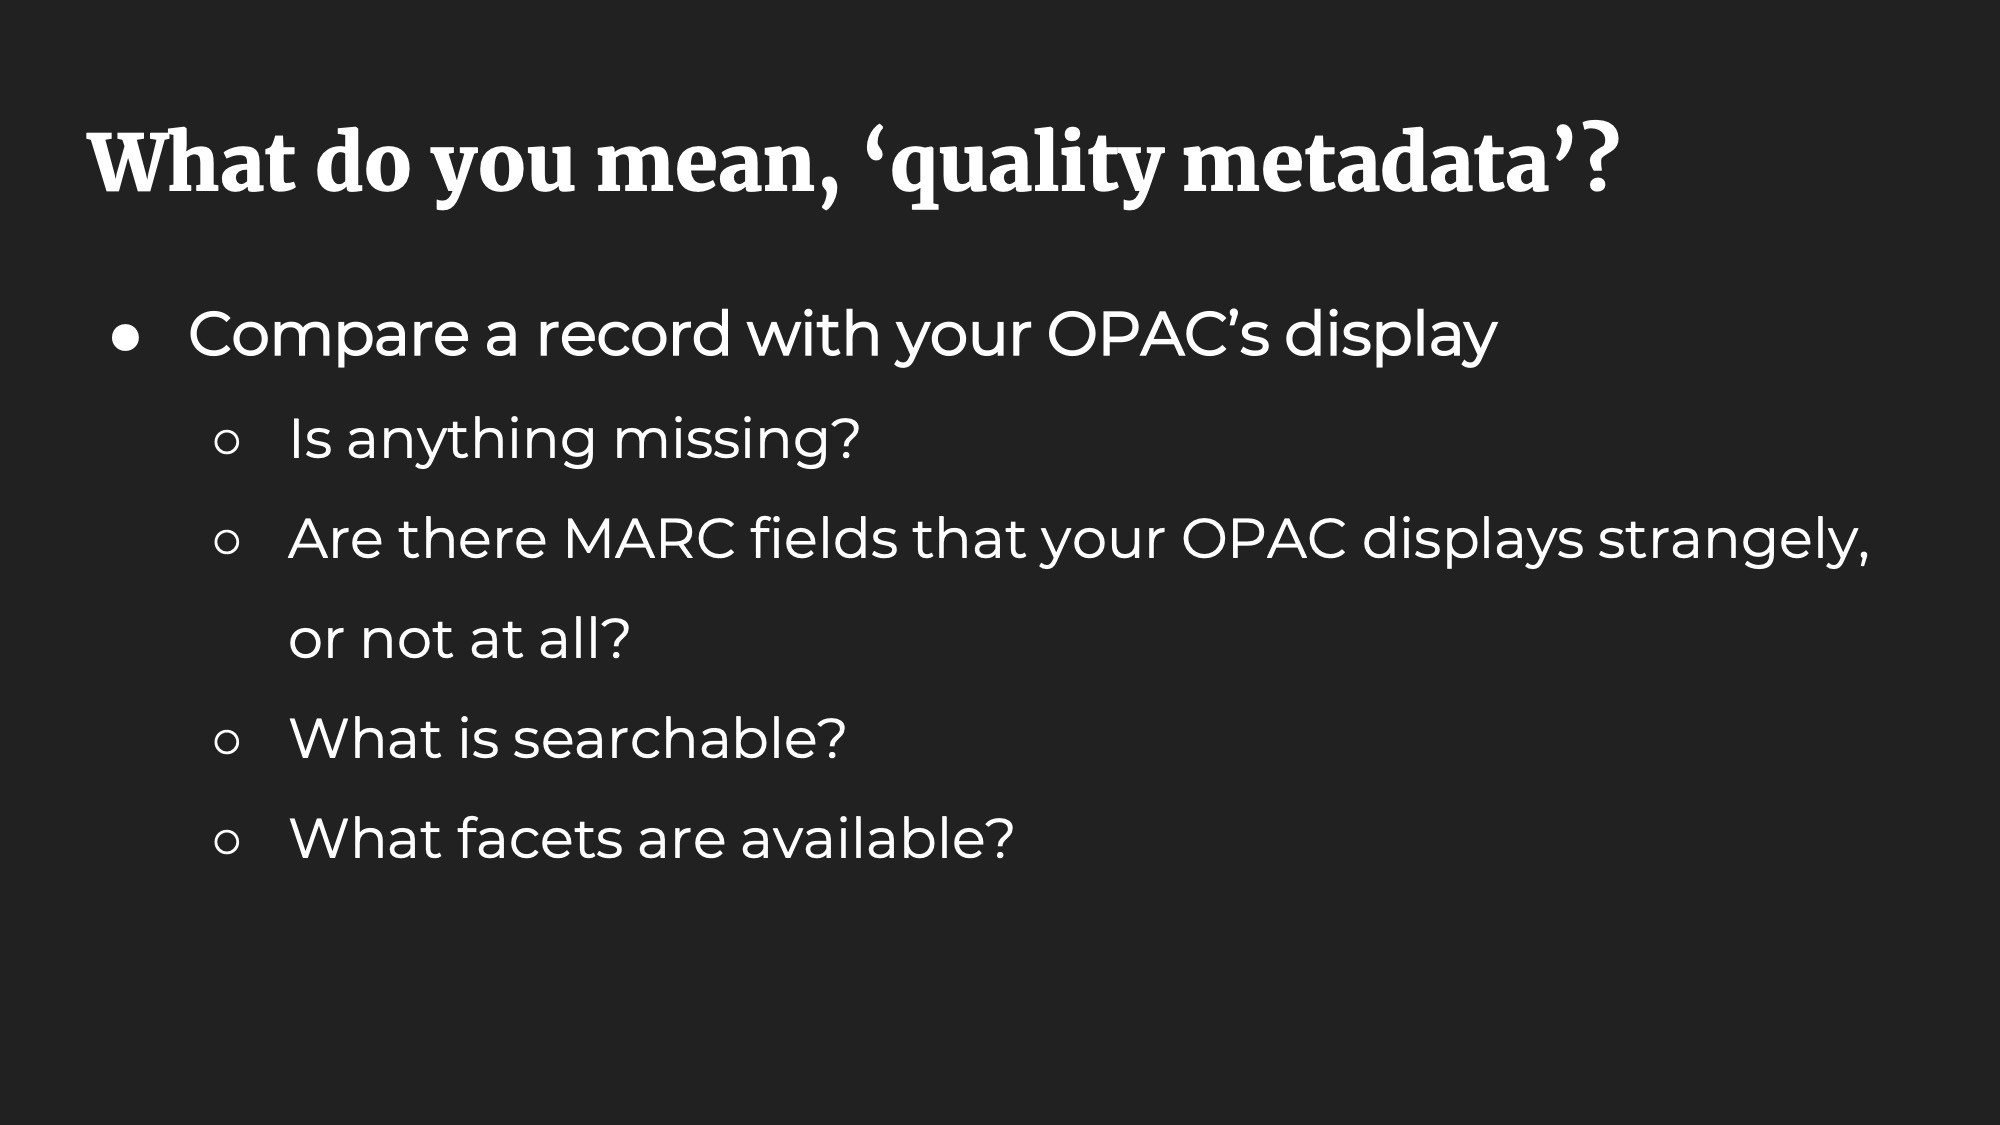 What do you mean, 'quality metadata'? Compare a record with your OPAC's display. Is anything missing? Are there MARC fields that your OPAC displays strangely, or not at all? What is searchable? What facets are available?